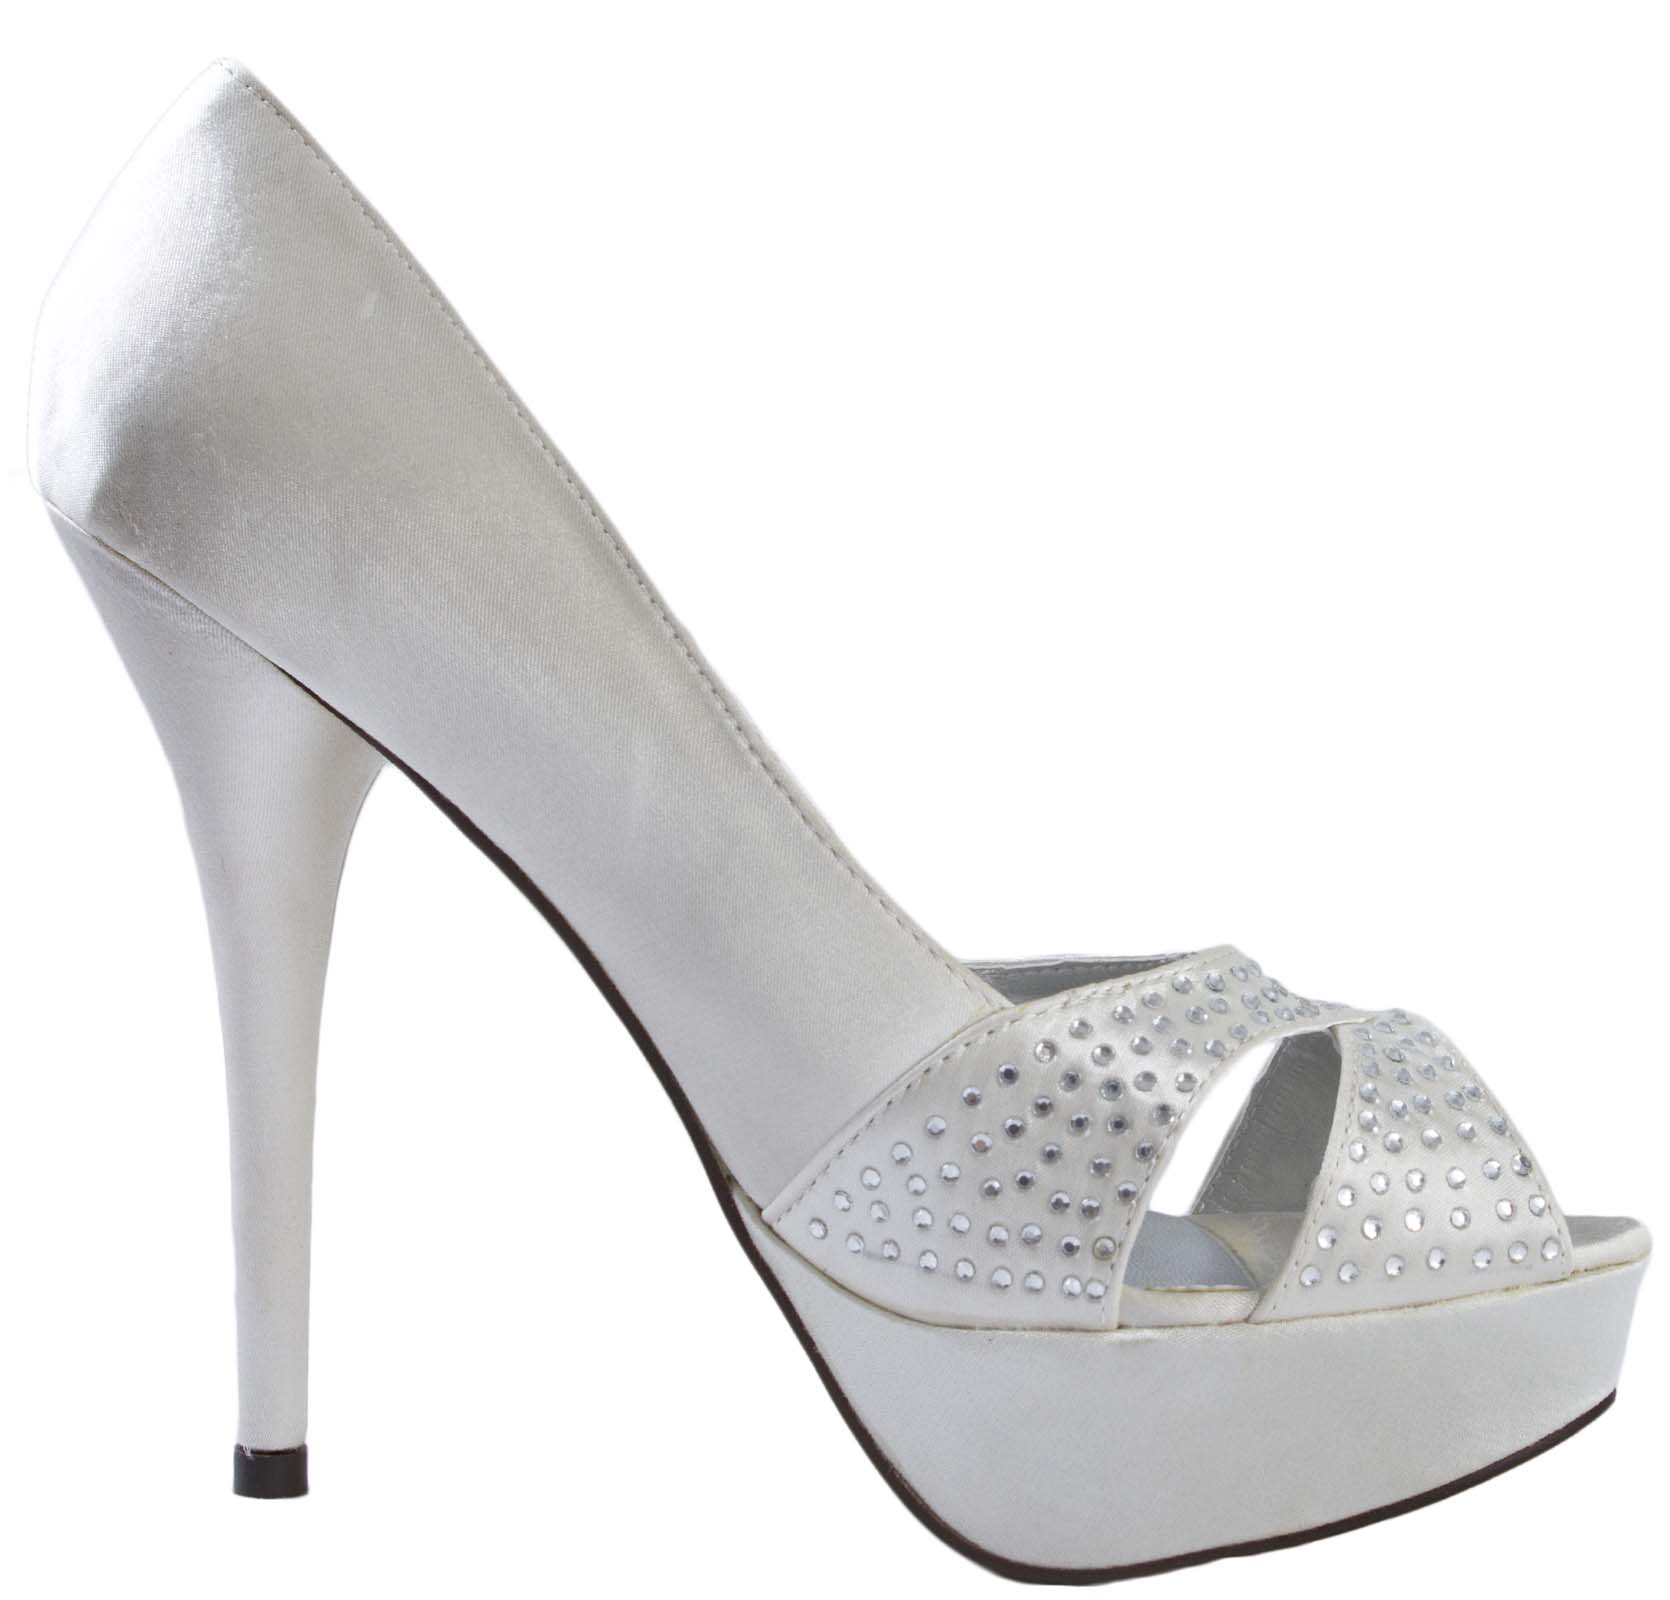 Womens Peep Toe Diamante High Heels Satin Bridal Wedding Shoes ...